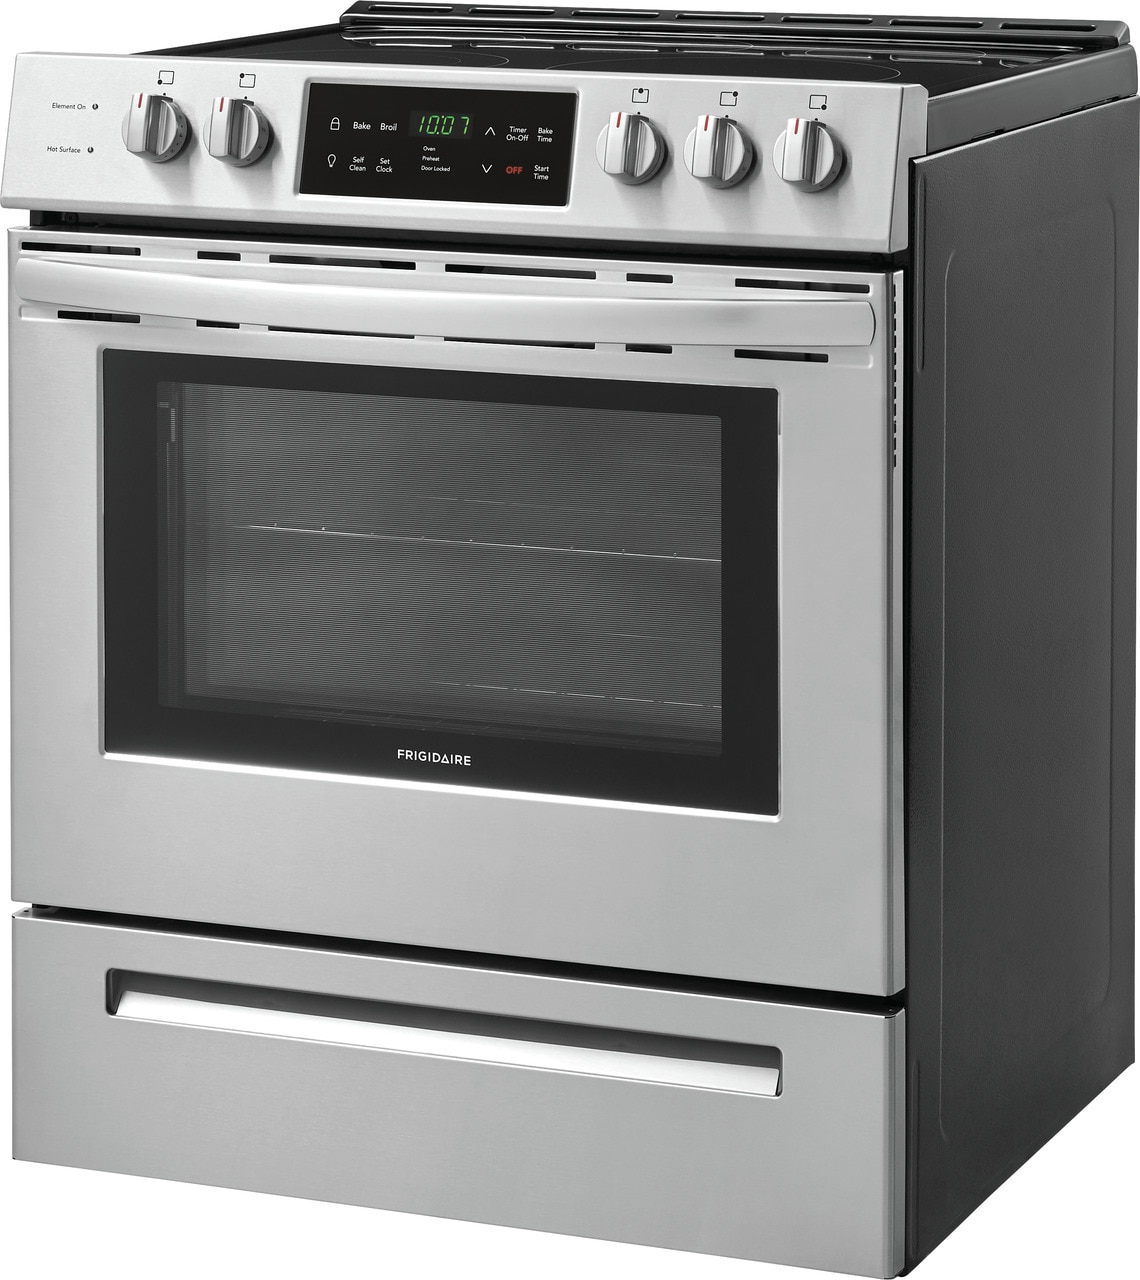 "Model: FFEH3054US | Frigidaire 30"" Front Control Freestanding Electric Range"